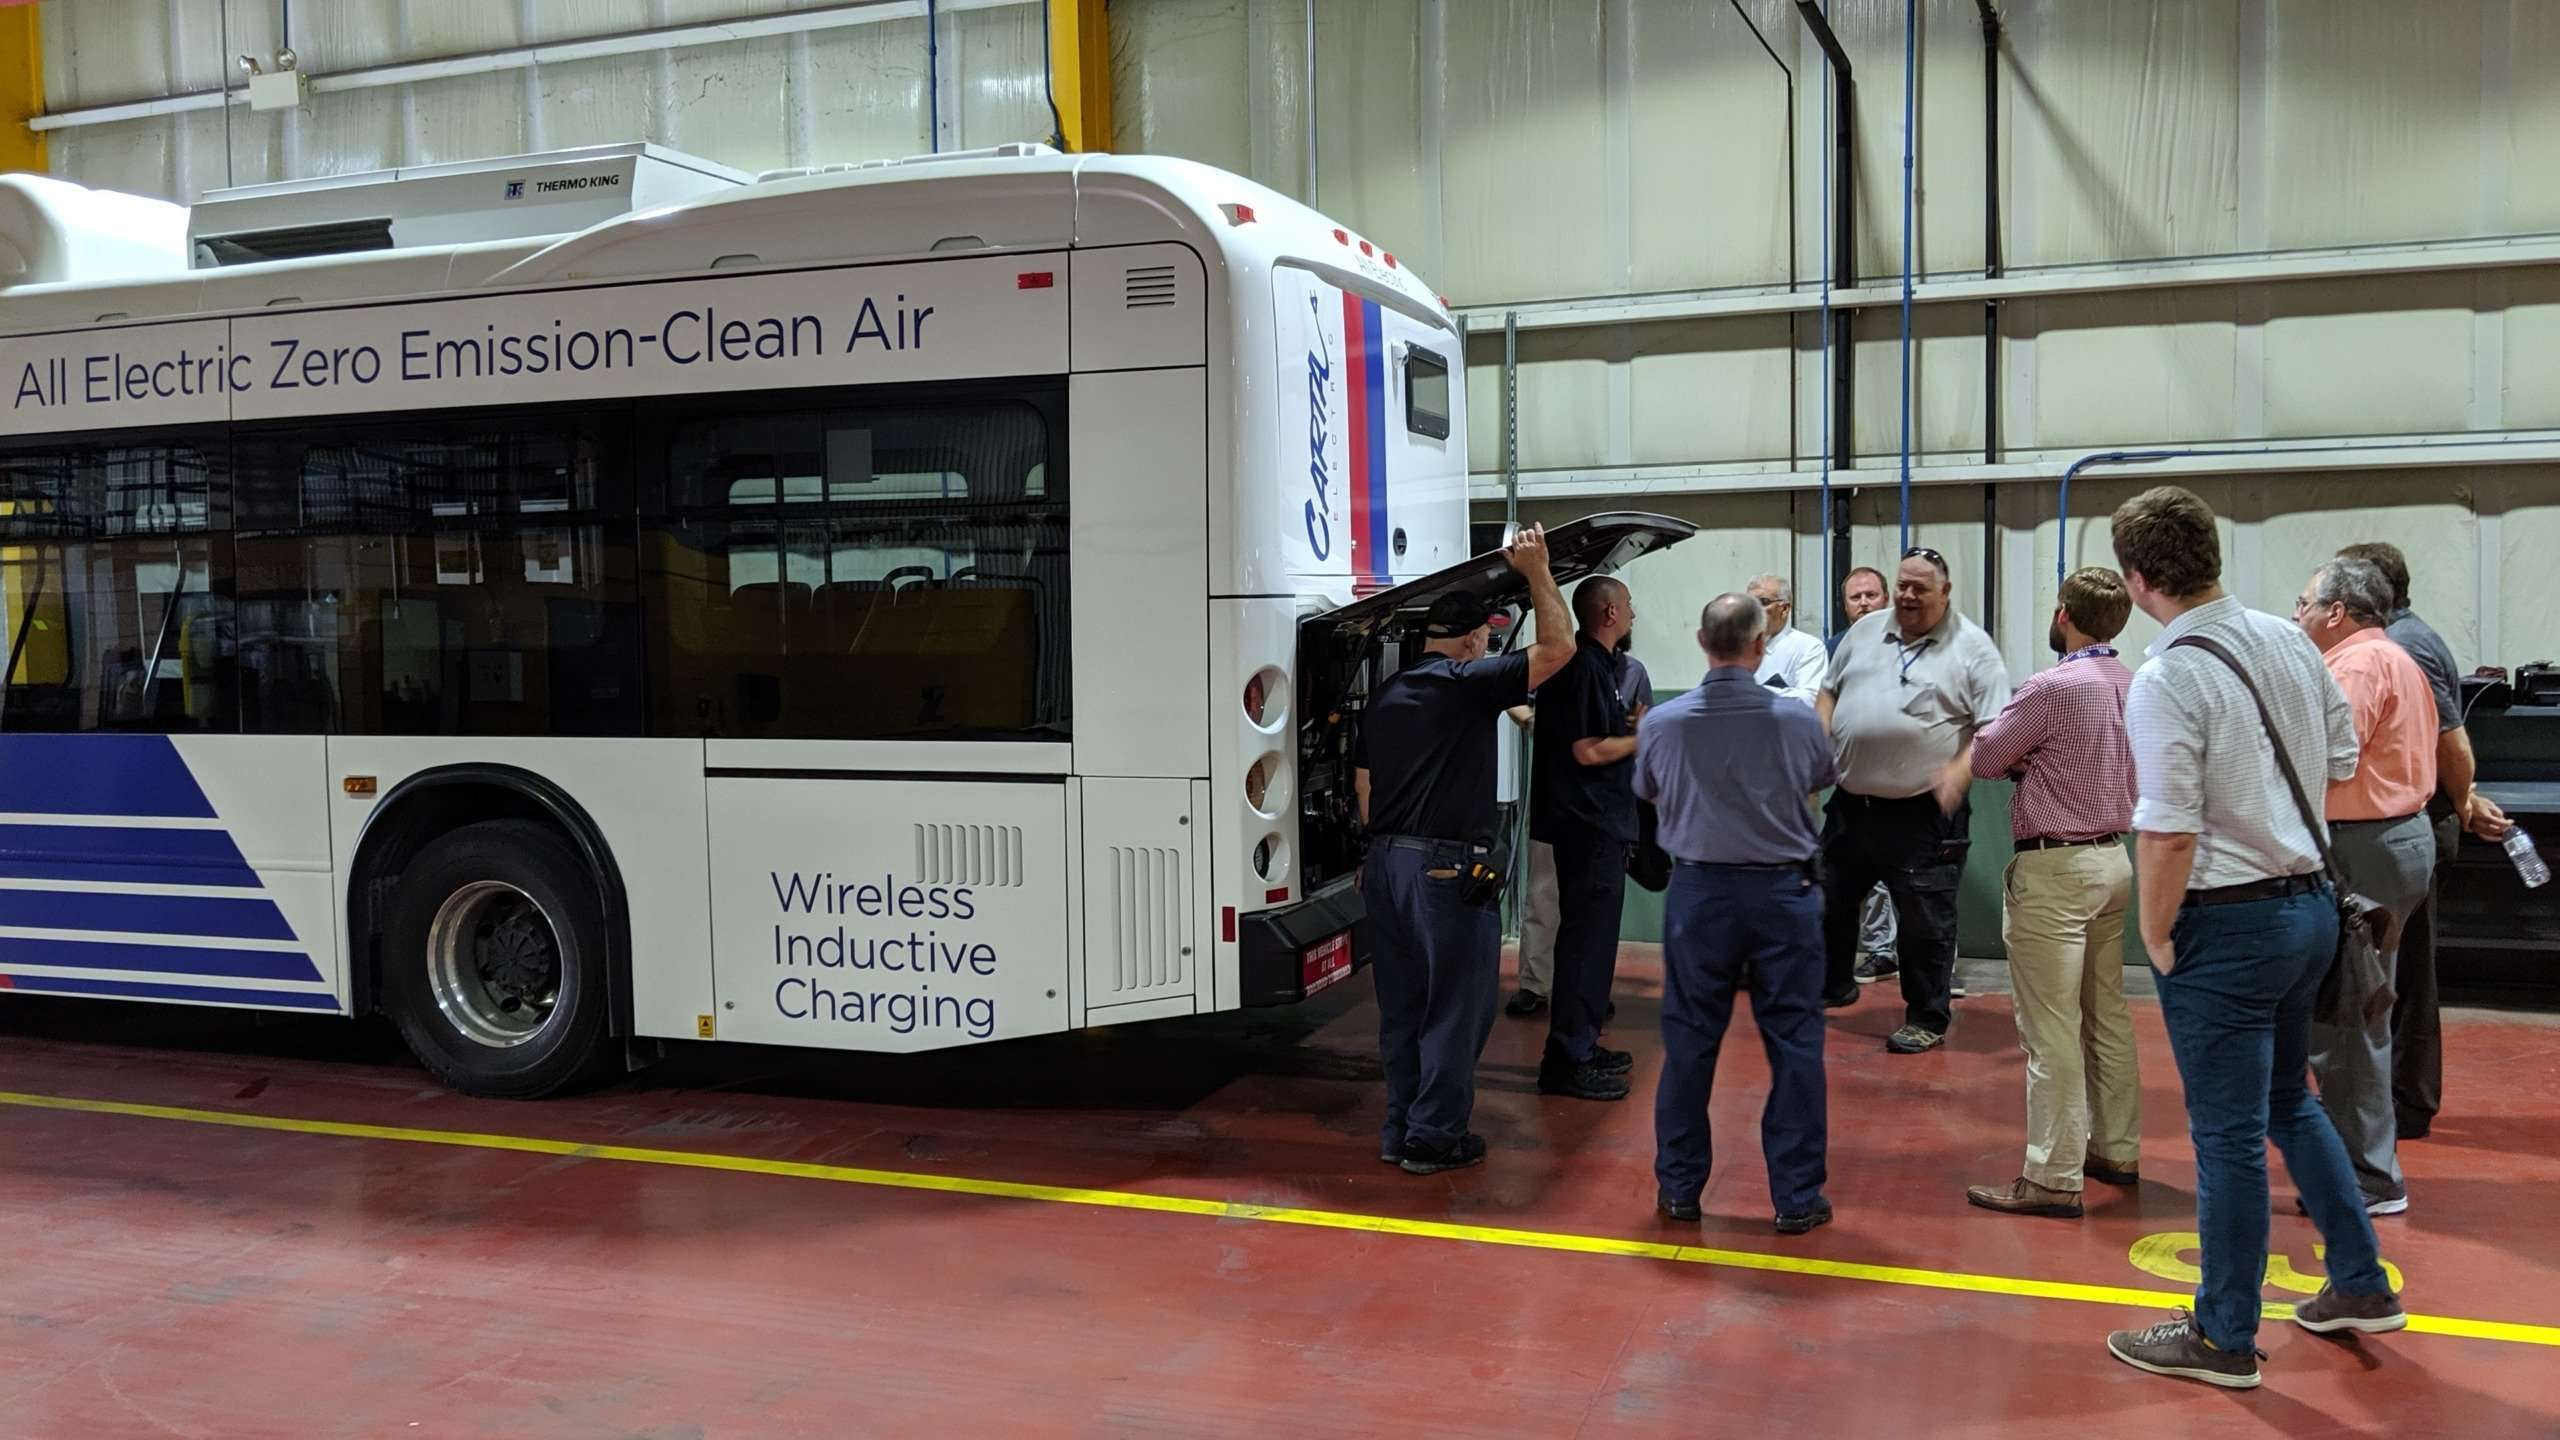 CARTA Electric Buses Tour - Held twice in 2019 to introduce citizens and businesses to the City of Chattanooga's electric mass transit bus fleet.